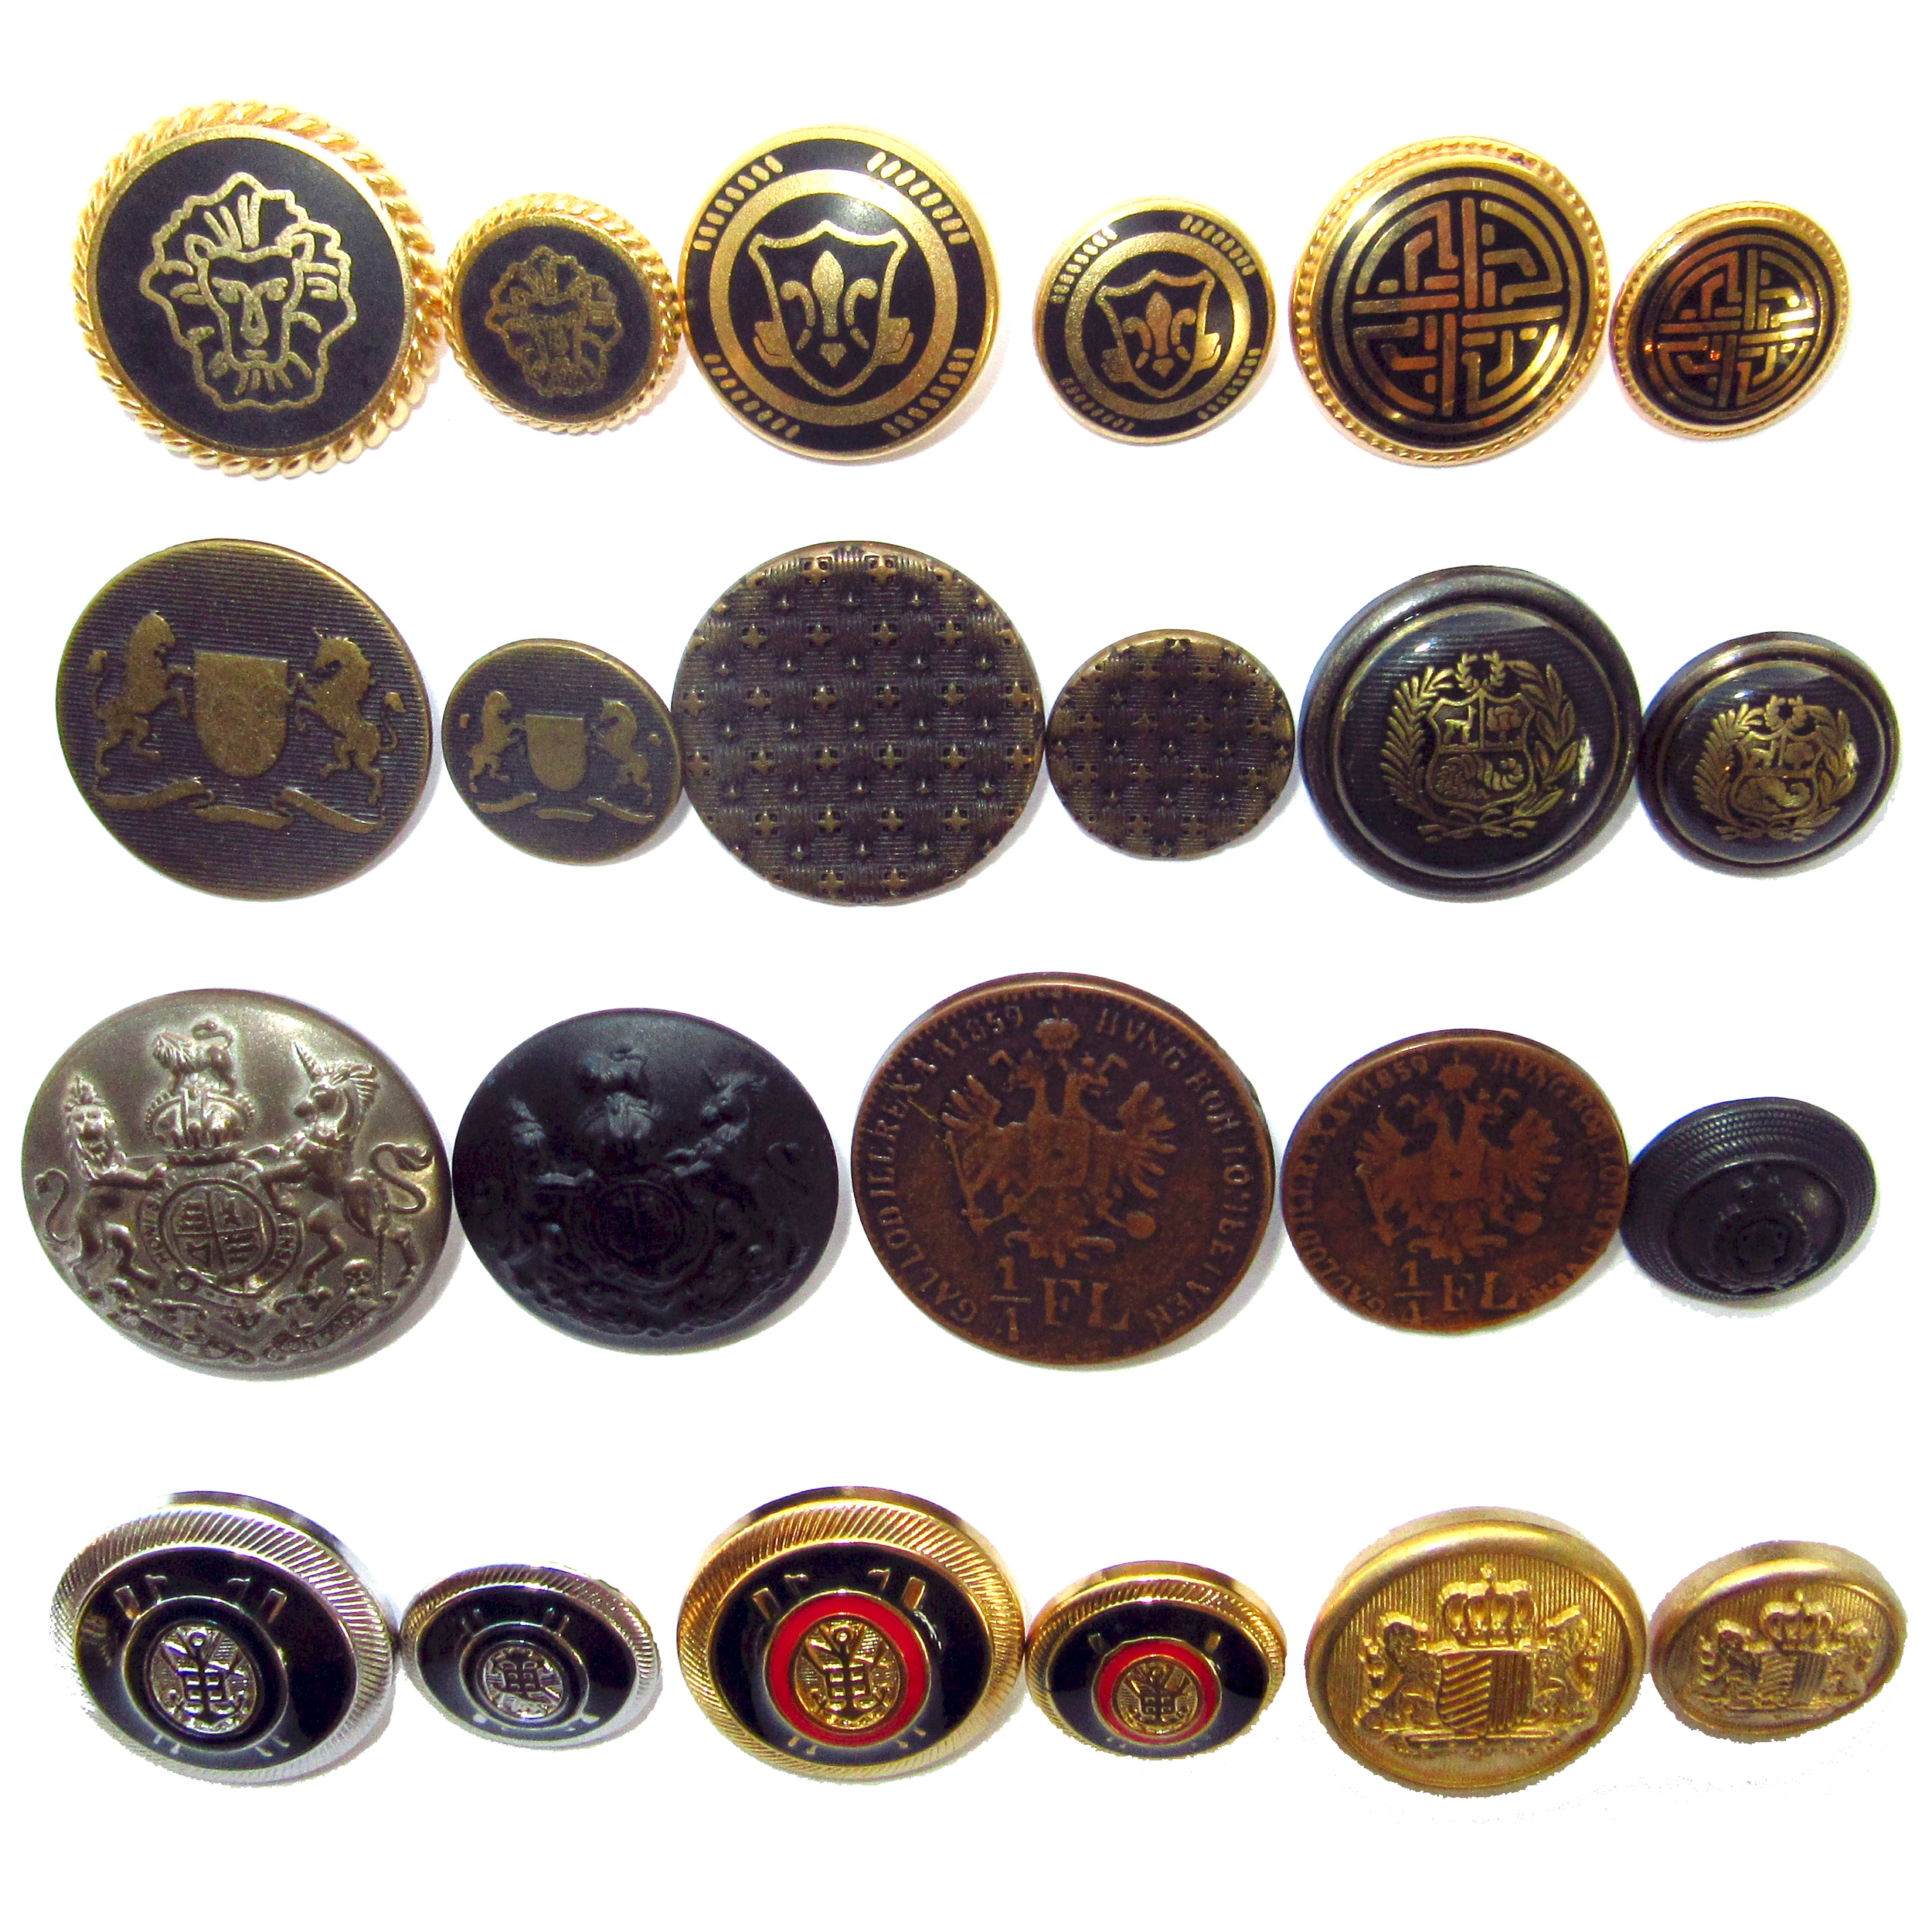 Military style metal buttons